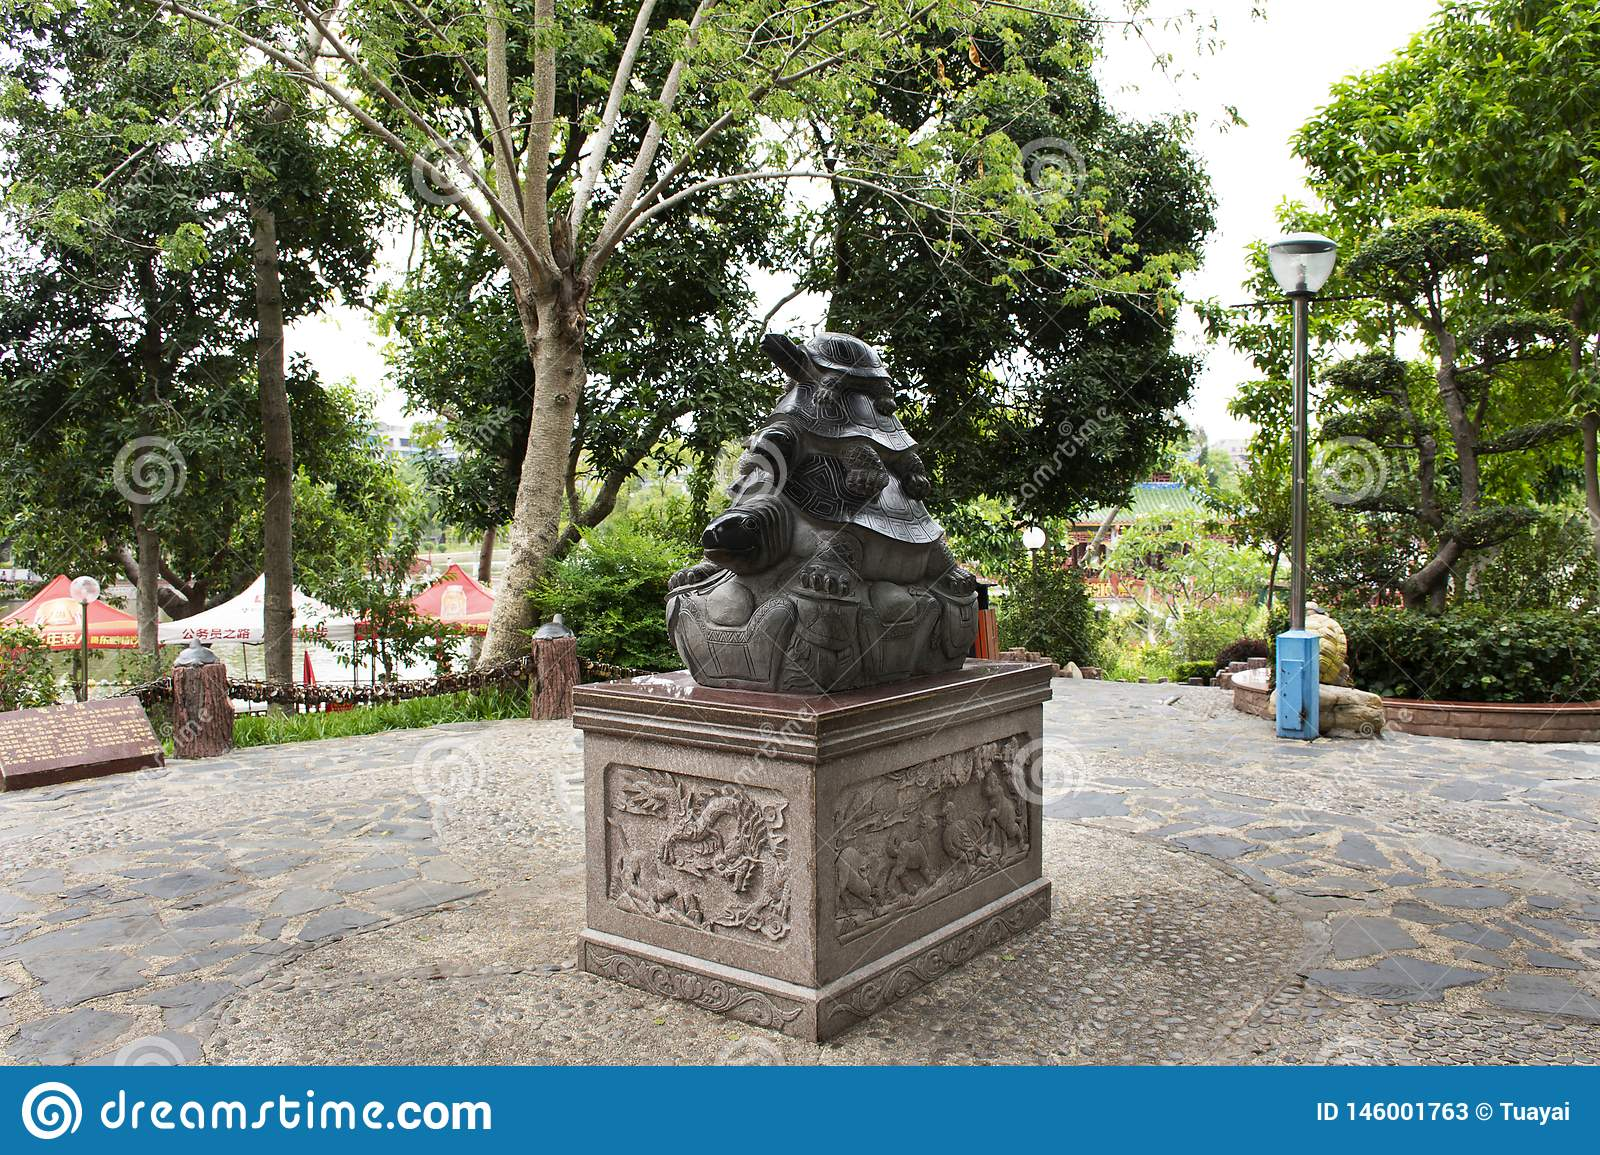 Tortoise Or Turtle Statue In Garden At Zhongshan Park At Shantou